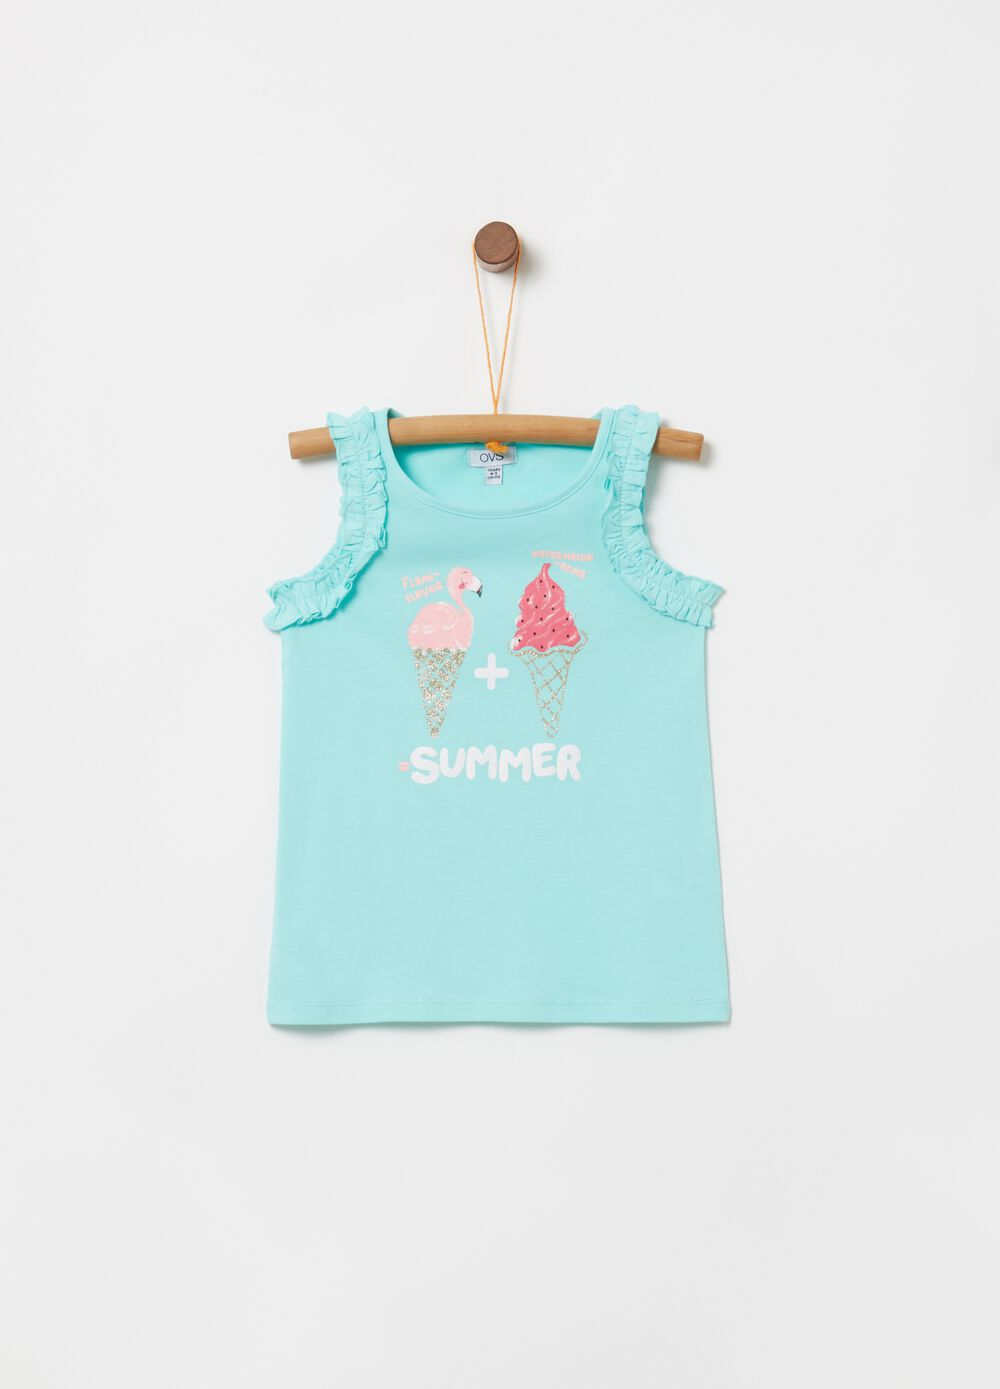 100% cotton tank top with glitter print